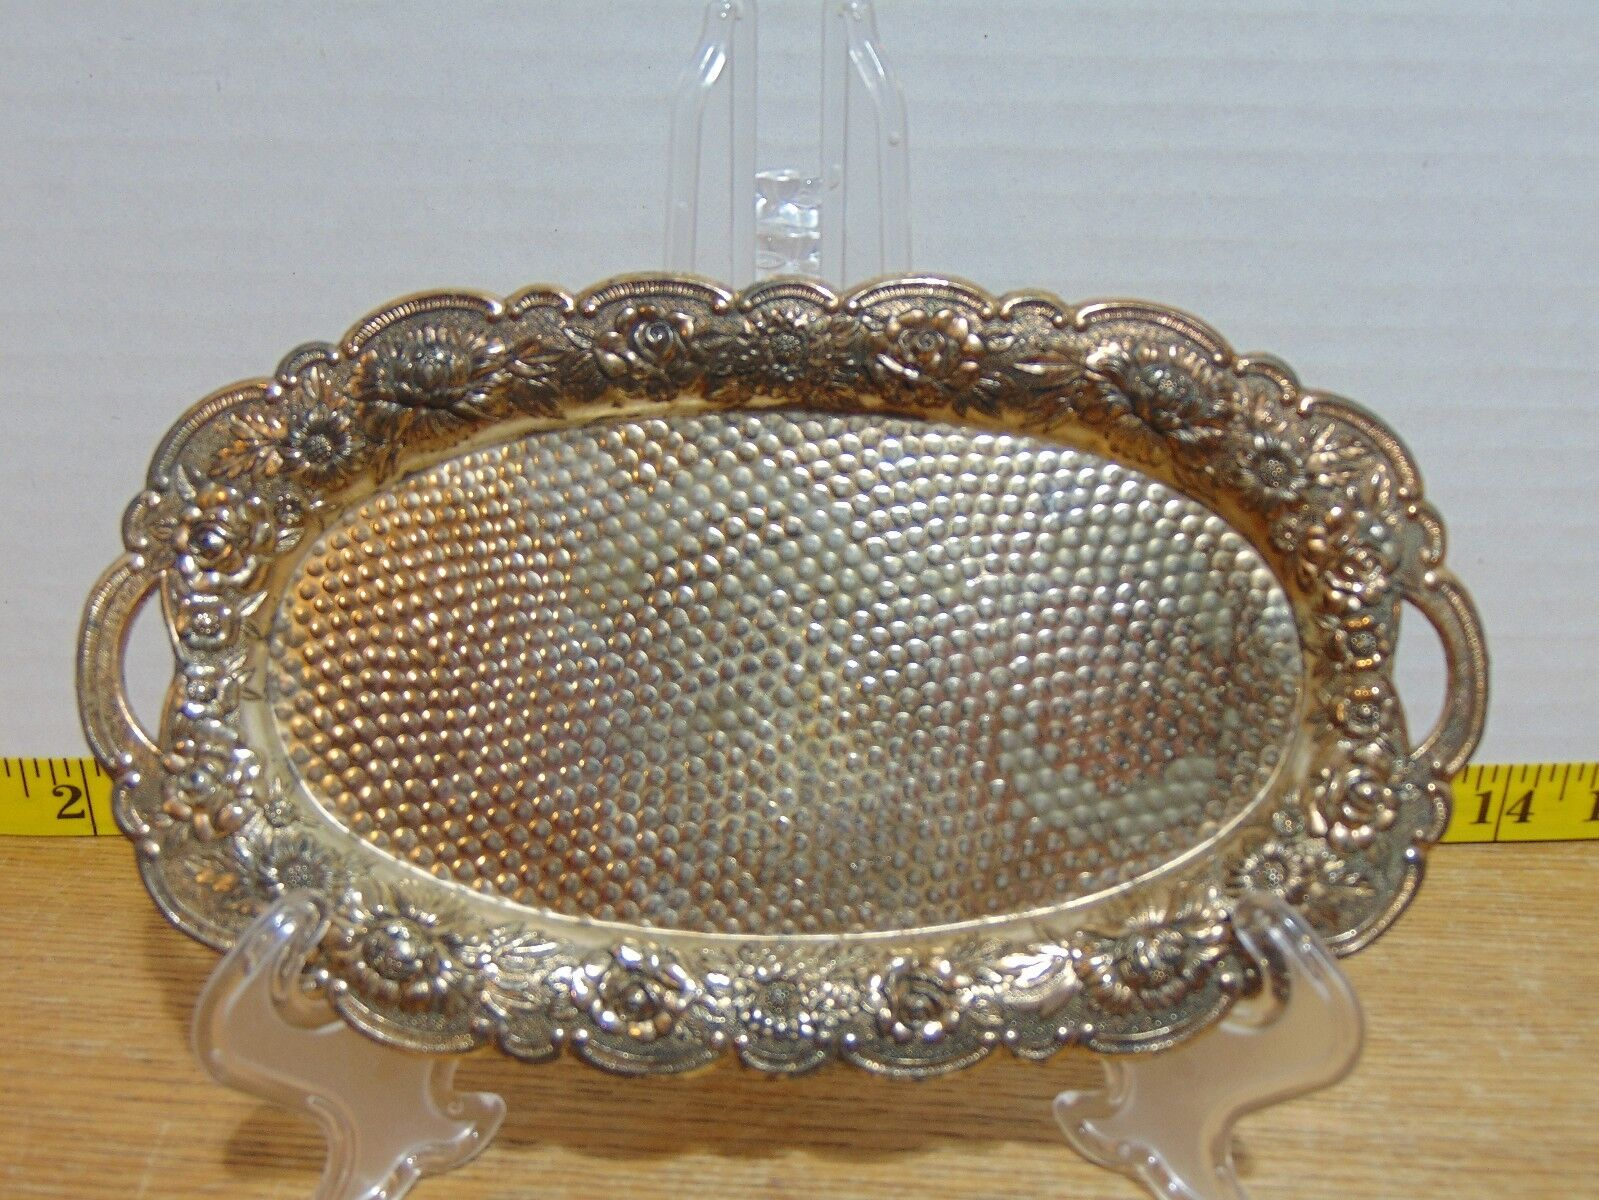 A Price Import Small Bronze Toned Metal Oval Vanity Tray Floral Edges 8 x4 1/2  - $6.00